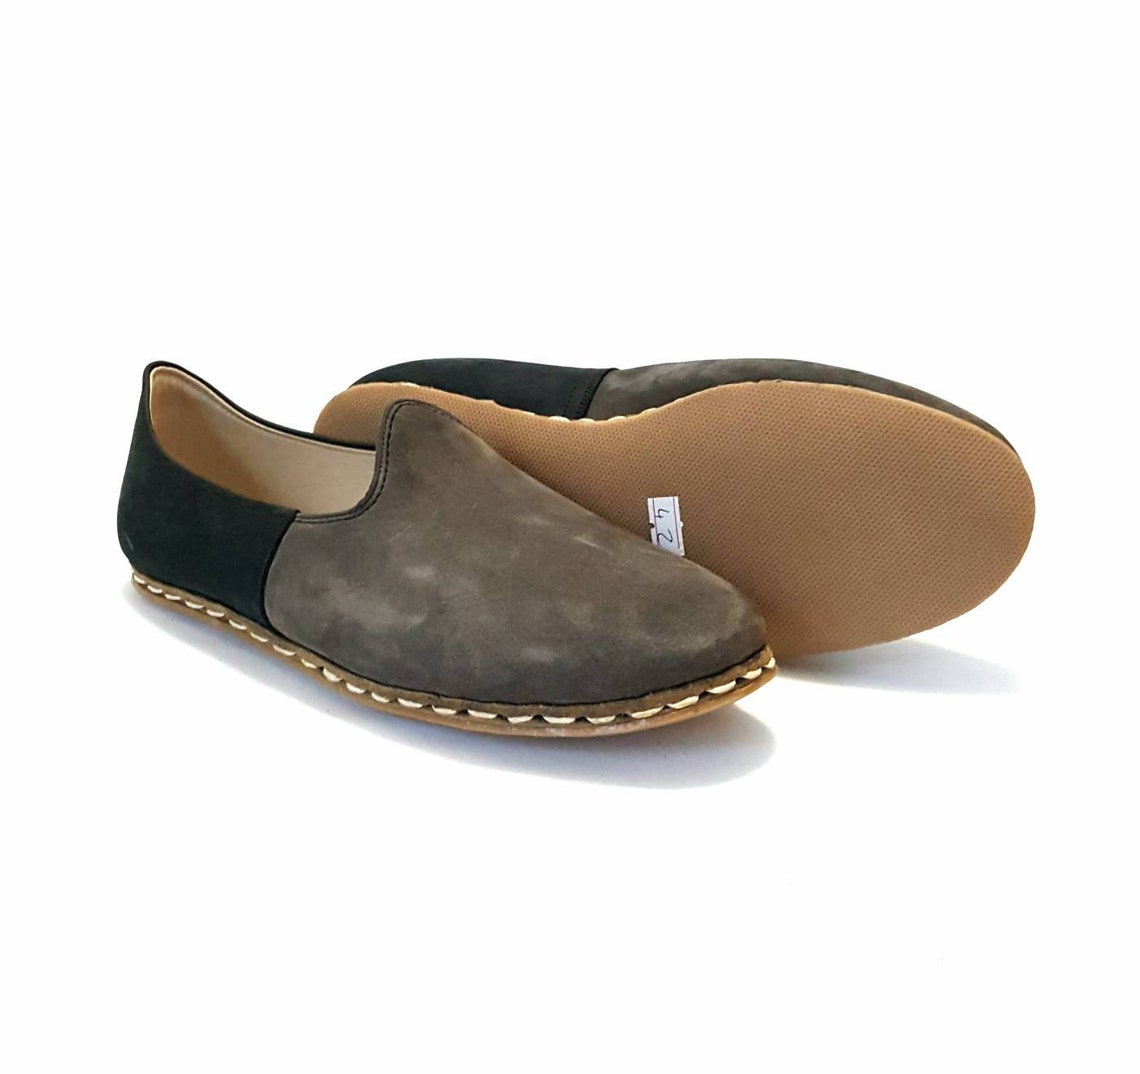 Closeout In Stock Handmade Two Tone Black Dark Gray Organic Dye 100% Leather Flat Slip Ons Men Loafers Emir Classic Earthing Grounding Shoes